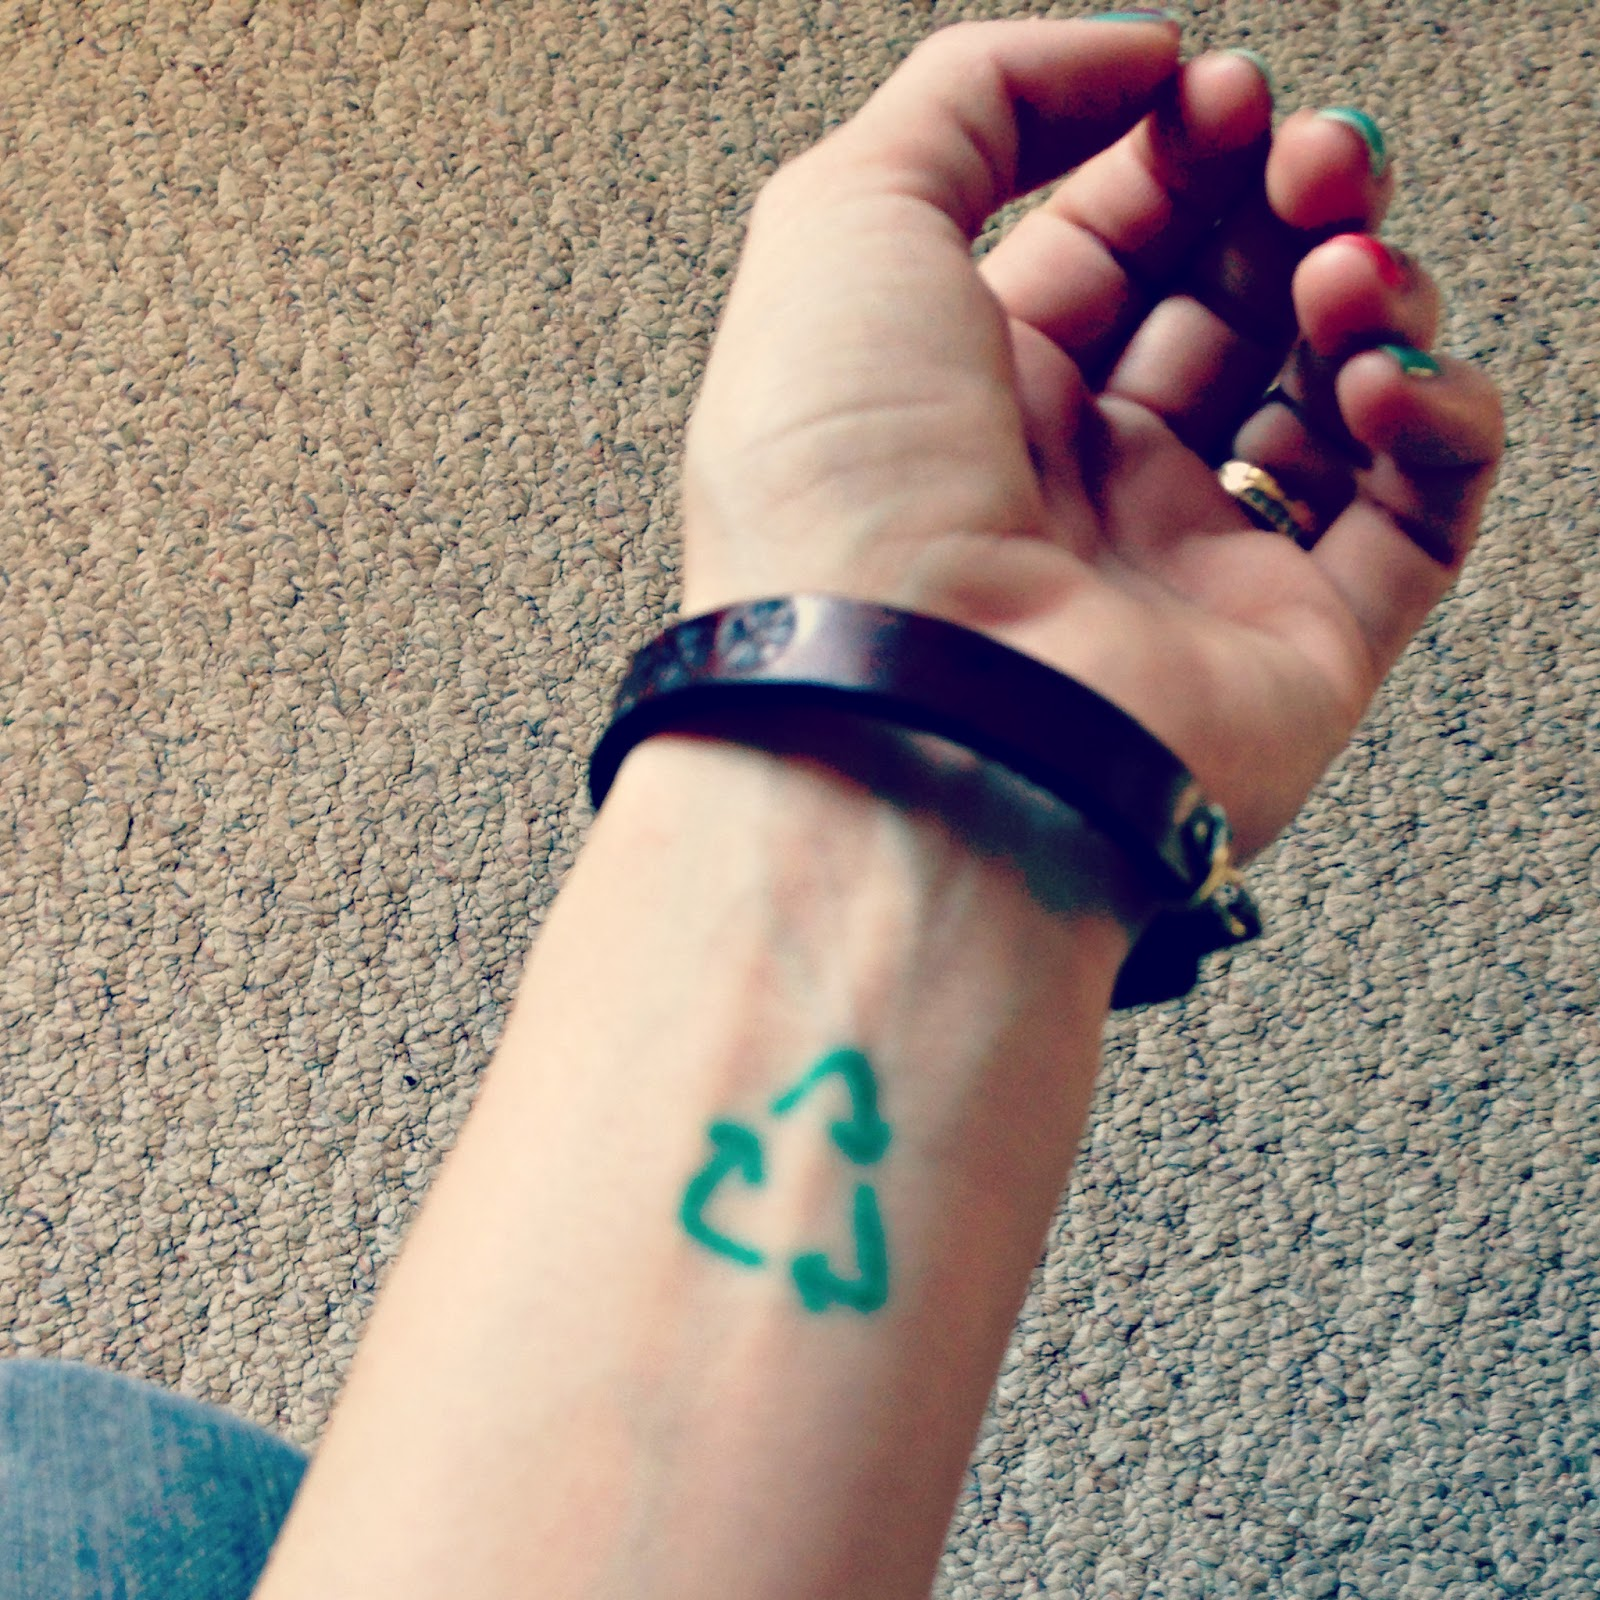 Earth Day 2013, earth day resolutions, reycling tattoo, greener lifestyle